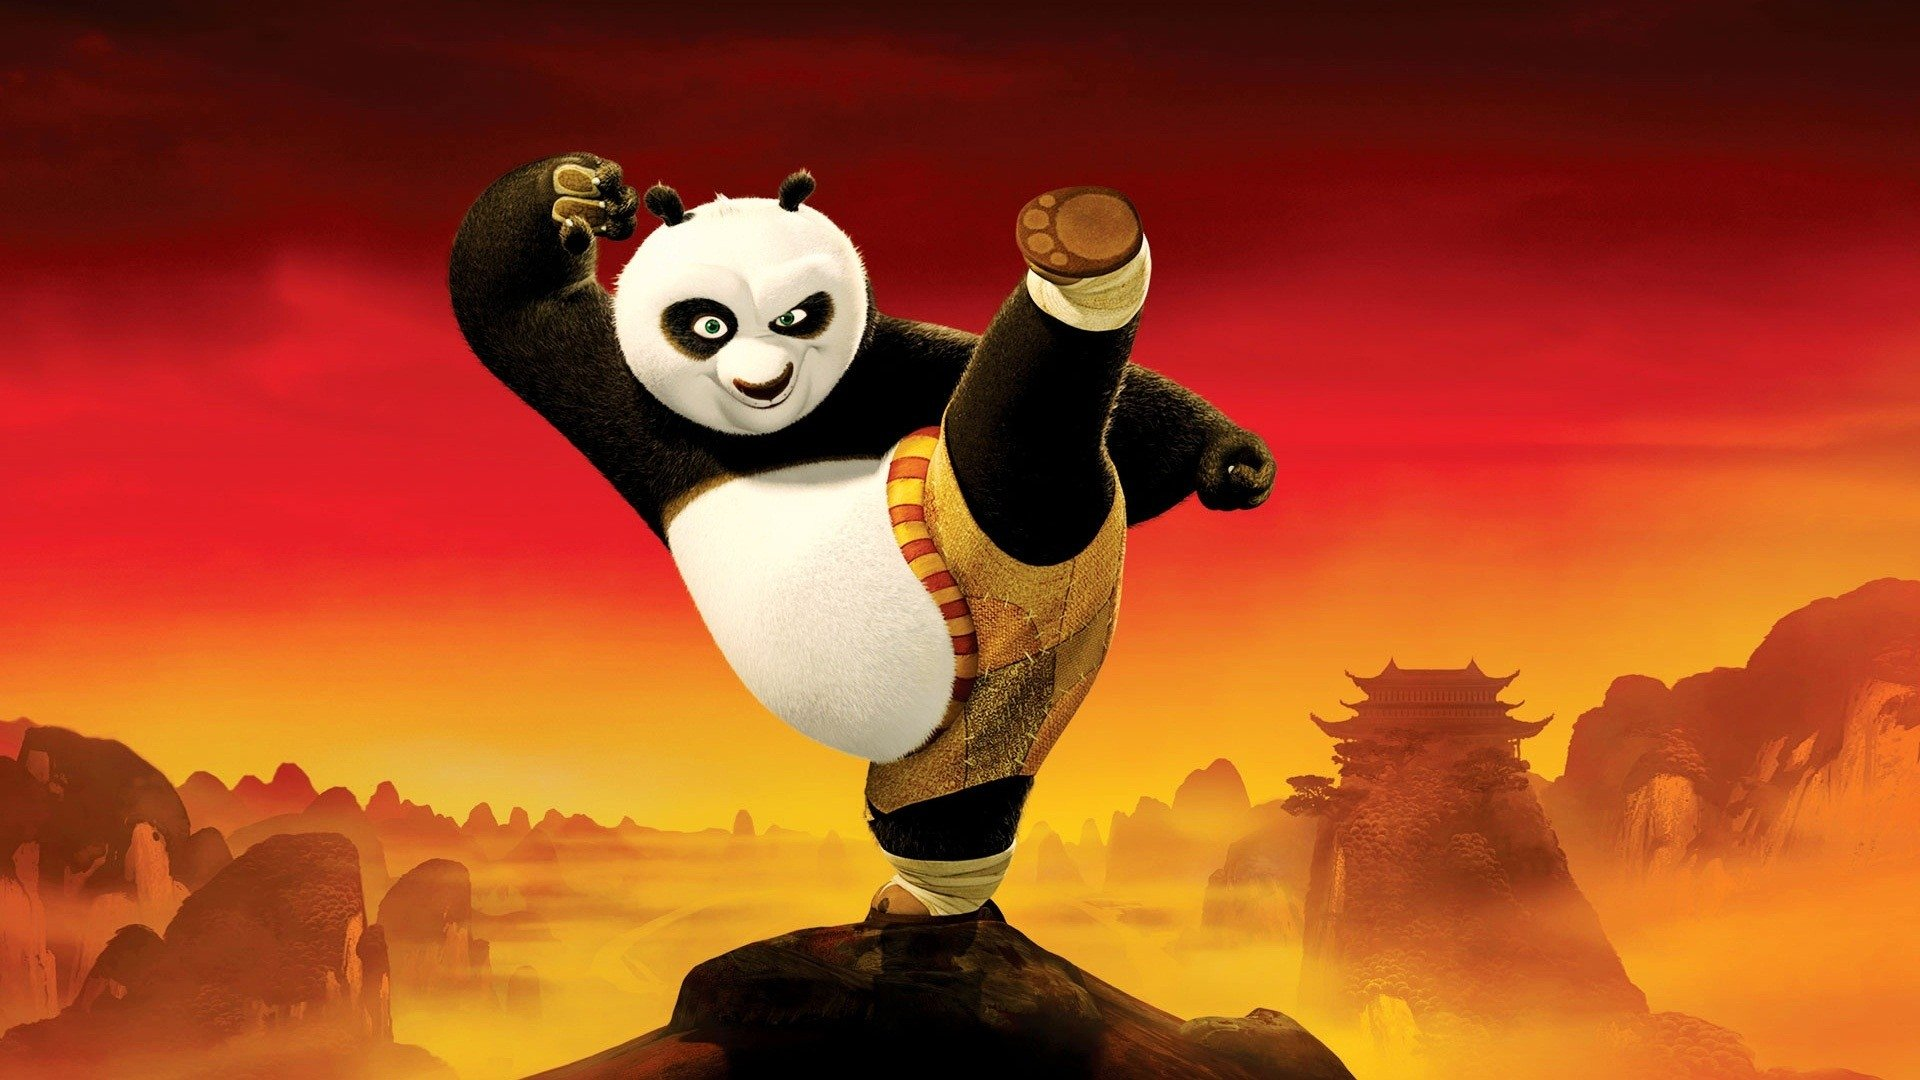 33 Kung Fu Panda 2 Hd Wallpapers Background Images Wallpaper Abyss